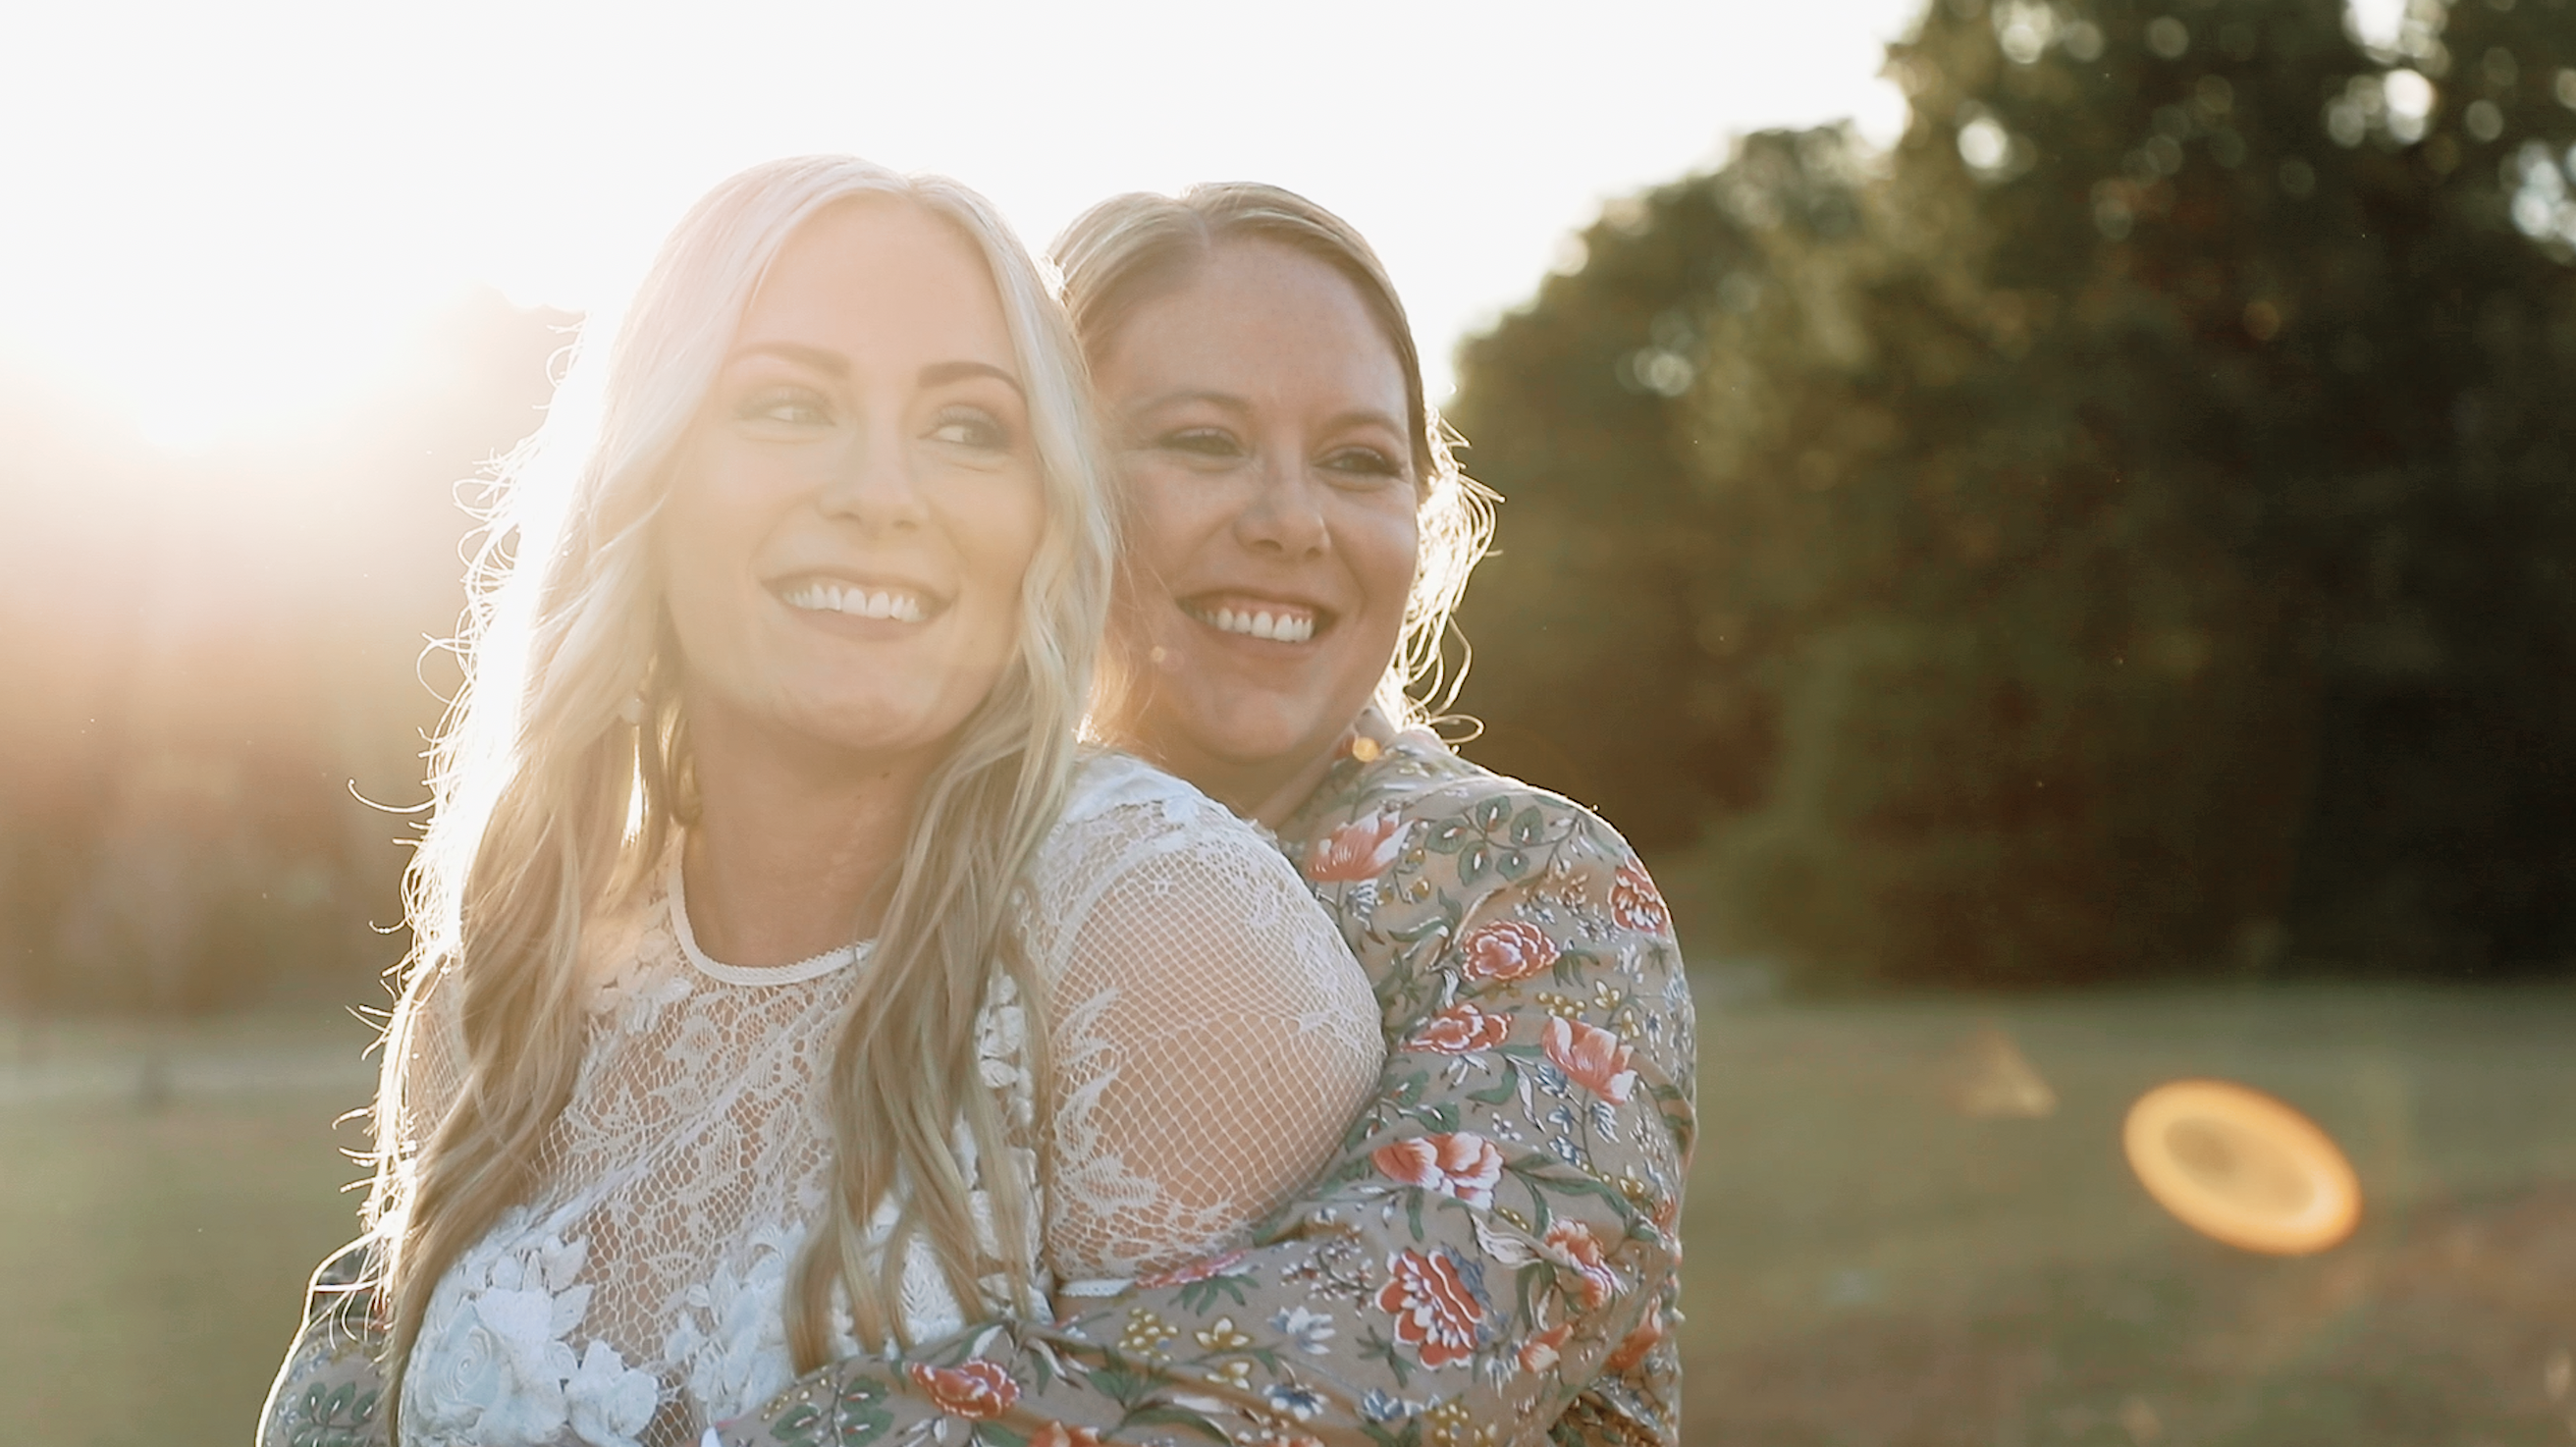 Kelly + Courtney | Austin, Texas | an Airbnb